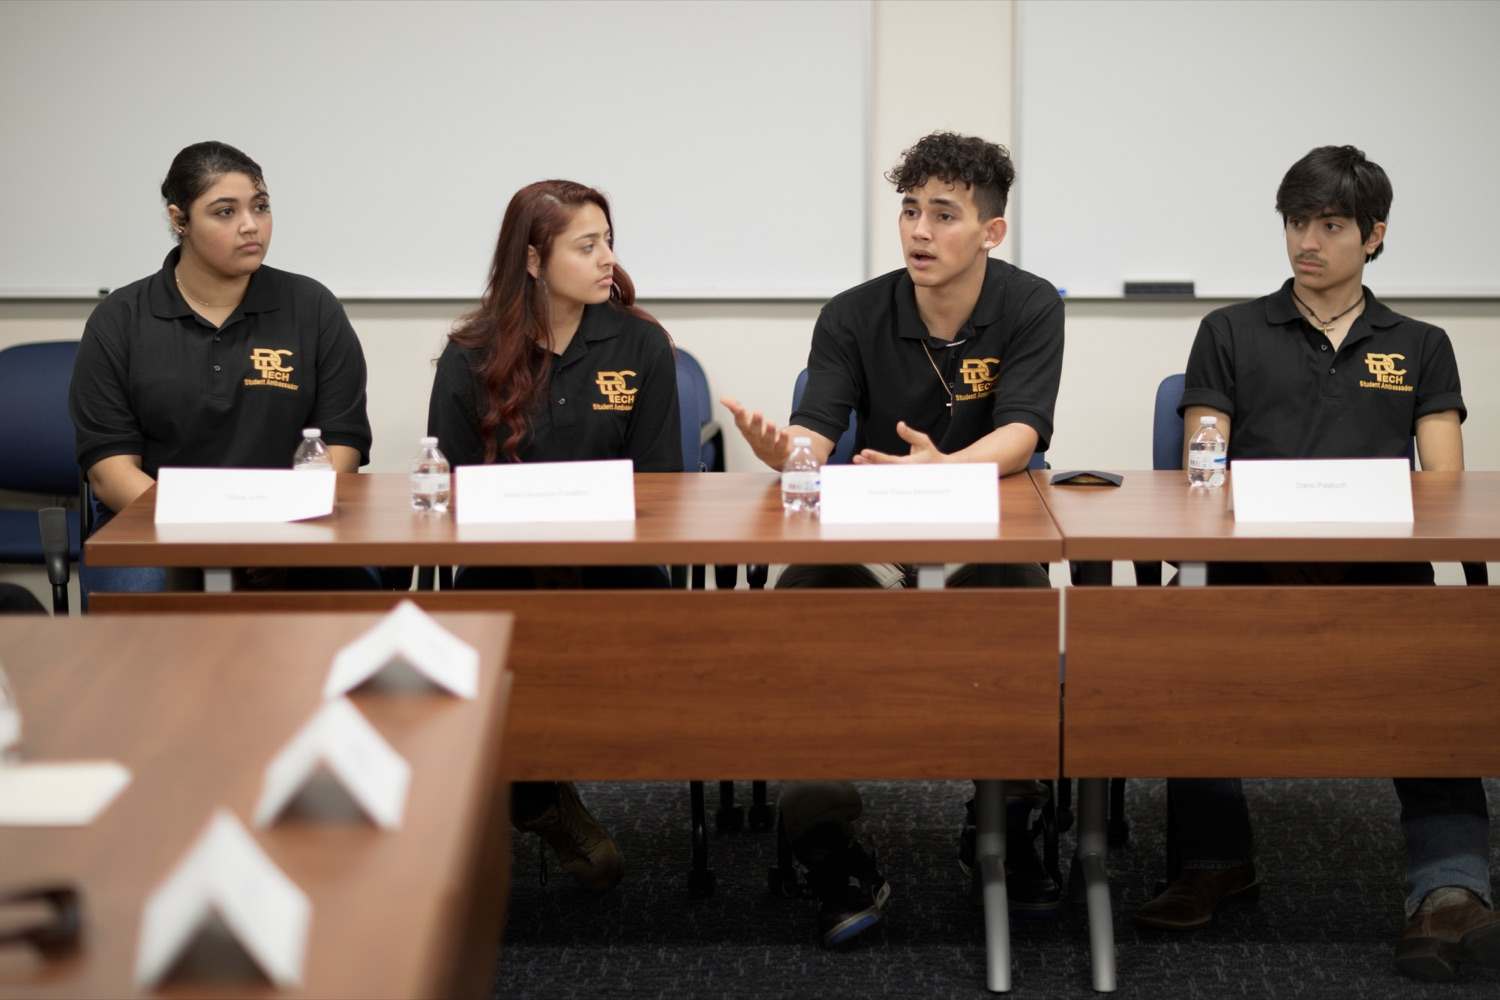 """<a href=""""https://filesource.wostreaming.net/commonwealthofpa/photo/17719_AUD_GEN_Tech_School_NK_011.JPG"""" target=""""_blank"""">⇣Download Photo<br></a>From left; Dauphin County Technical School students Olivia Juett, 18, studying criminal justice; Jayliz DeJesus-Carattini, 17, studying building construction tech; Javier Perez-McGovern, 18, studying automotive; and Daric Pastuch, 16, studying masonry, participate in a roundtable discussion inside the school on Wednesday, January 15, 2020."""